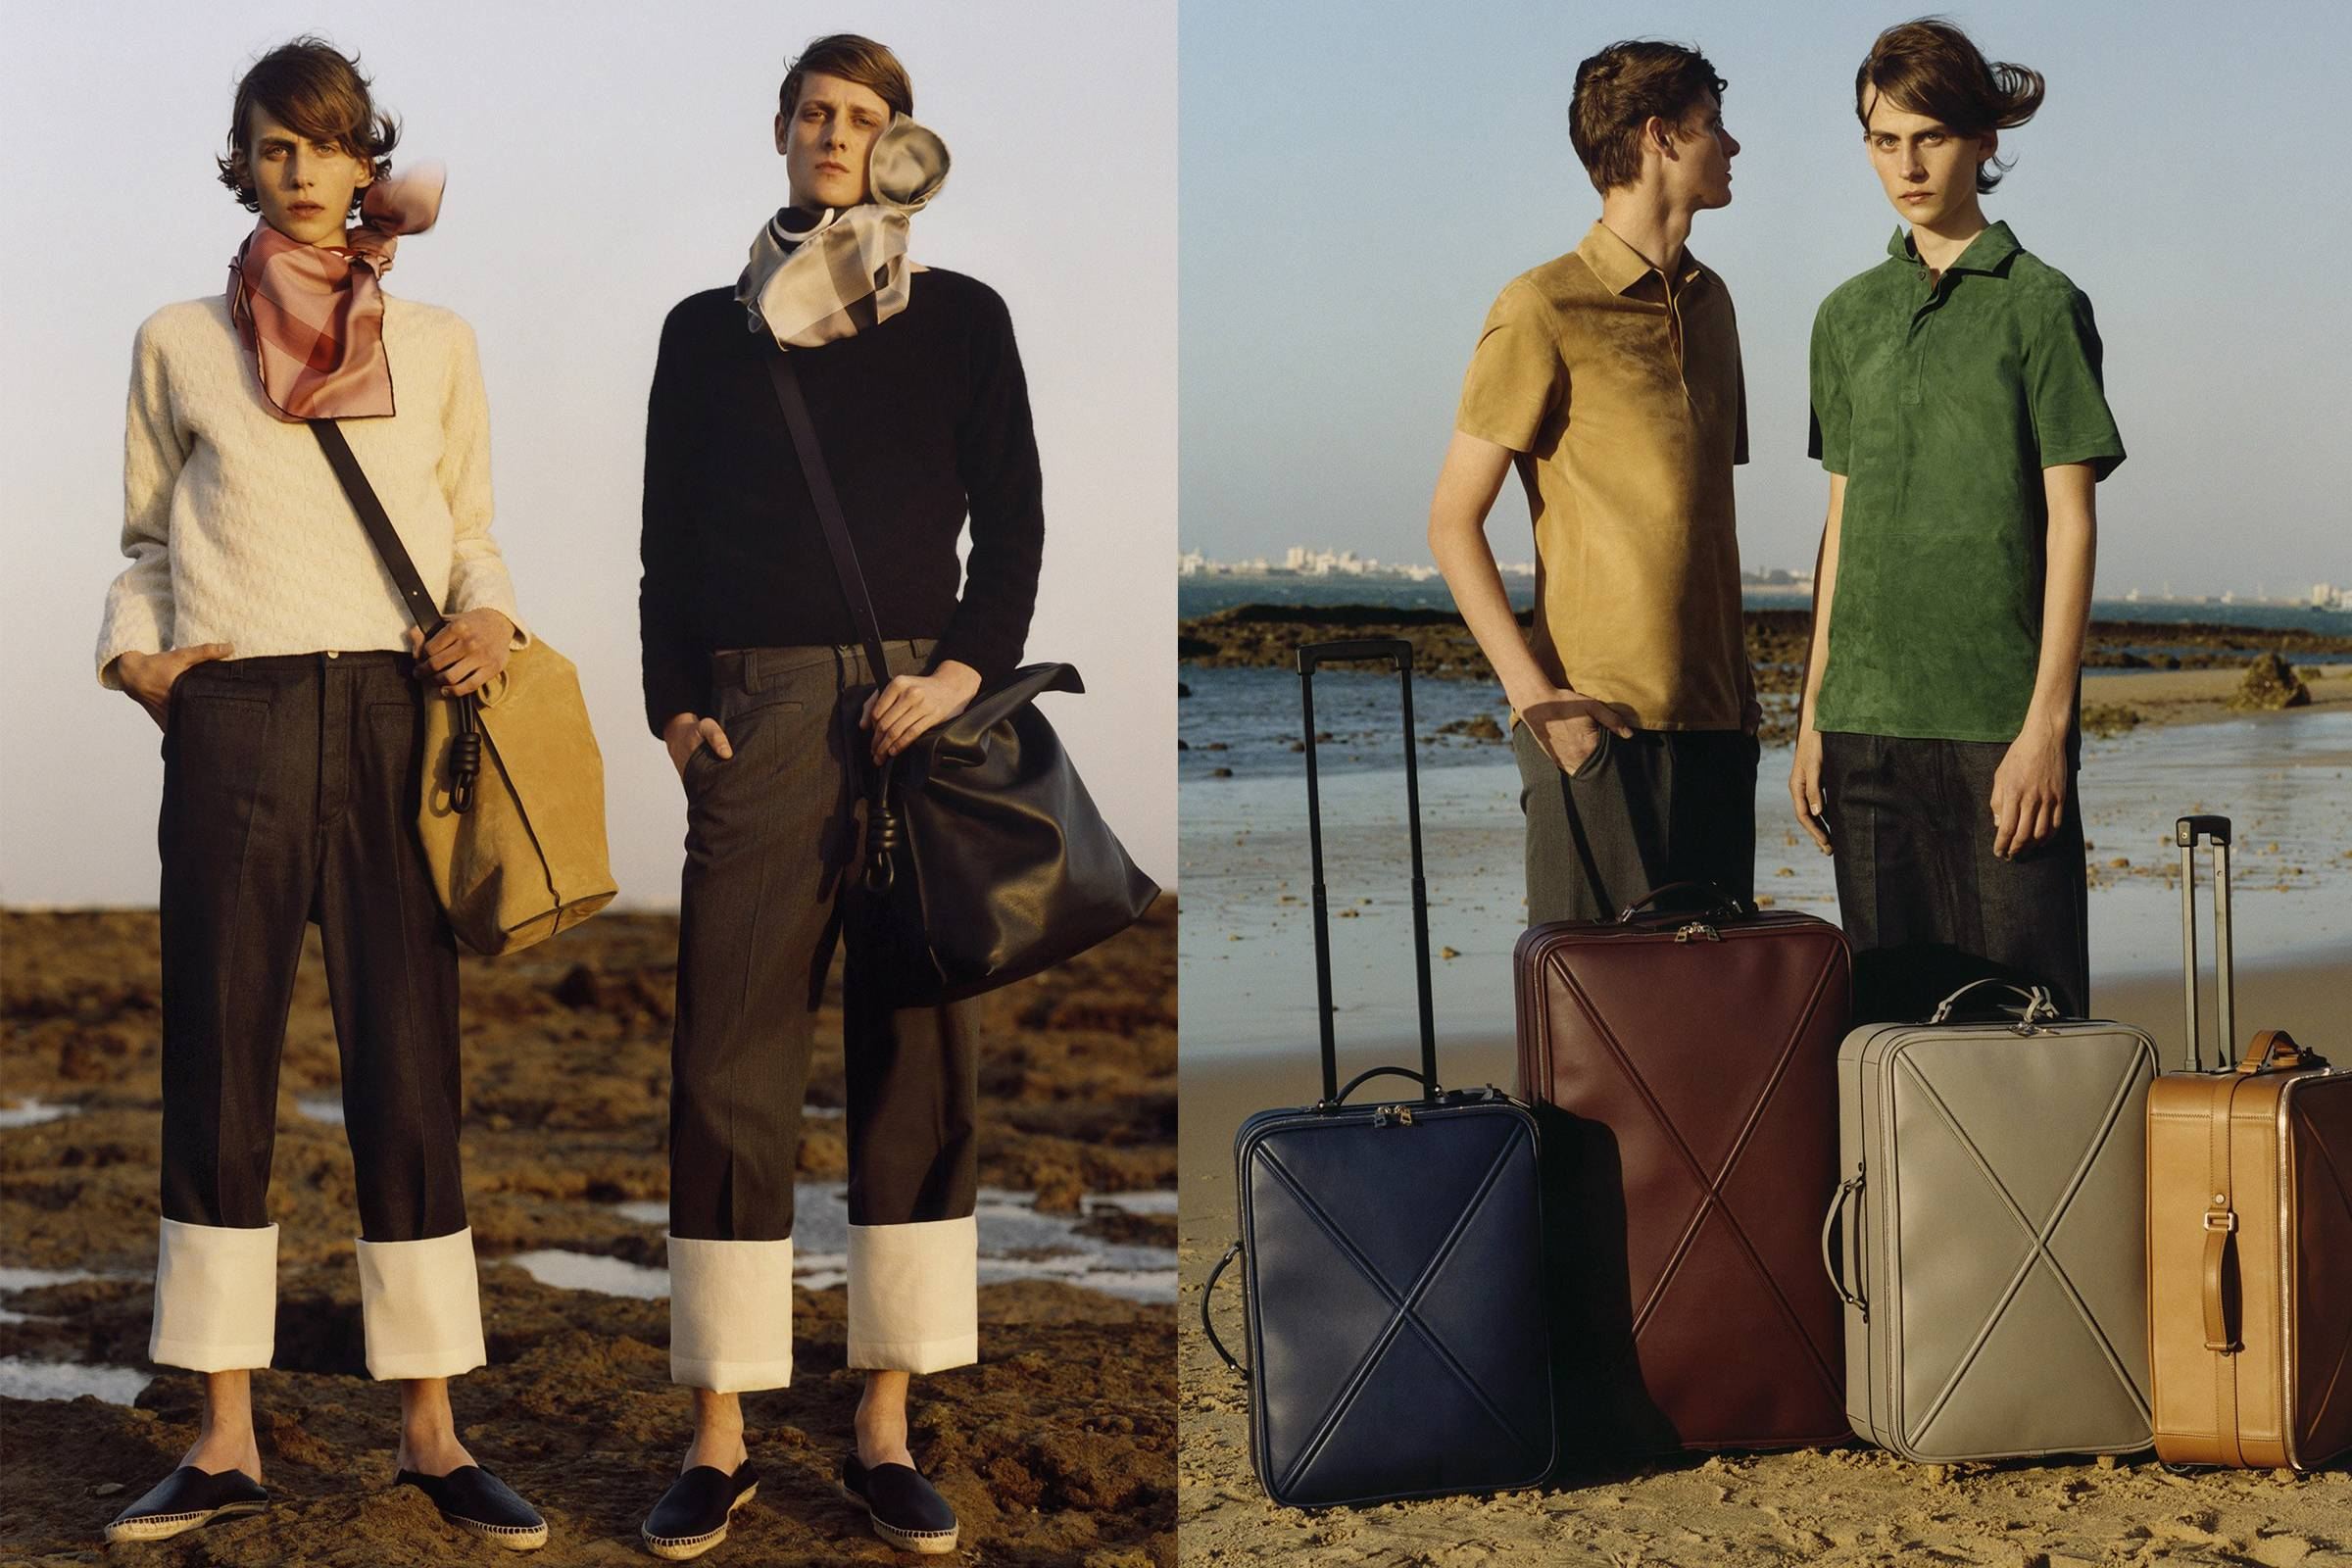 Loewe Spring/Summer 2015 Menswear collection by Jonathan Anderson